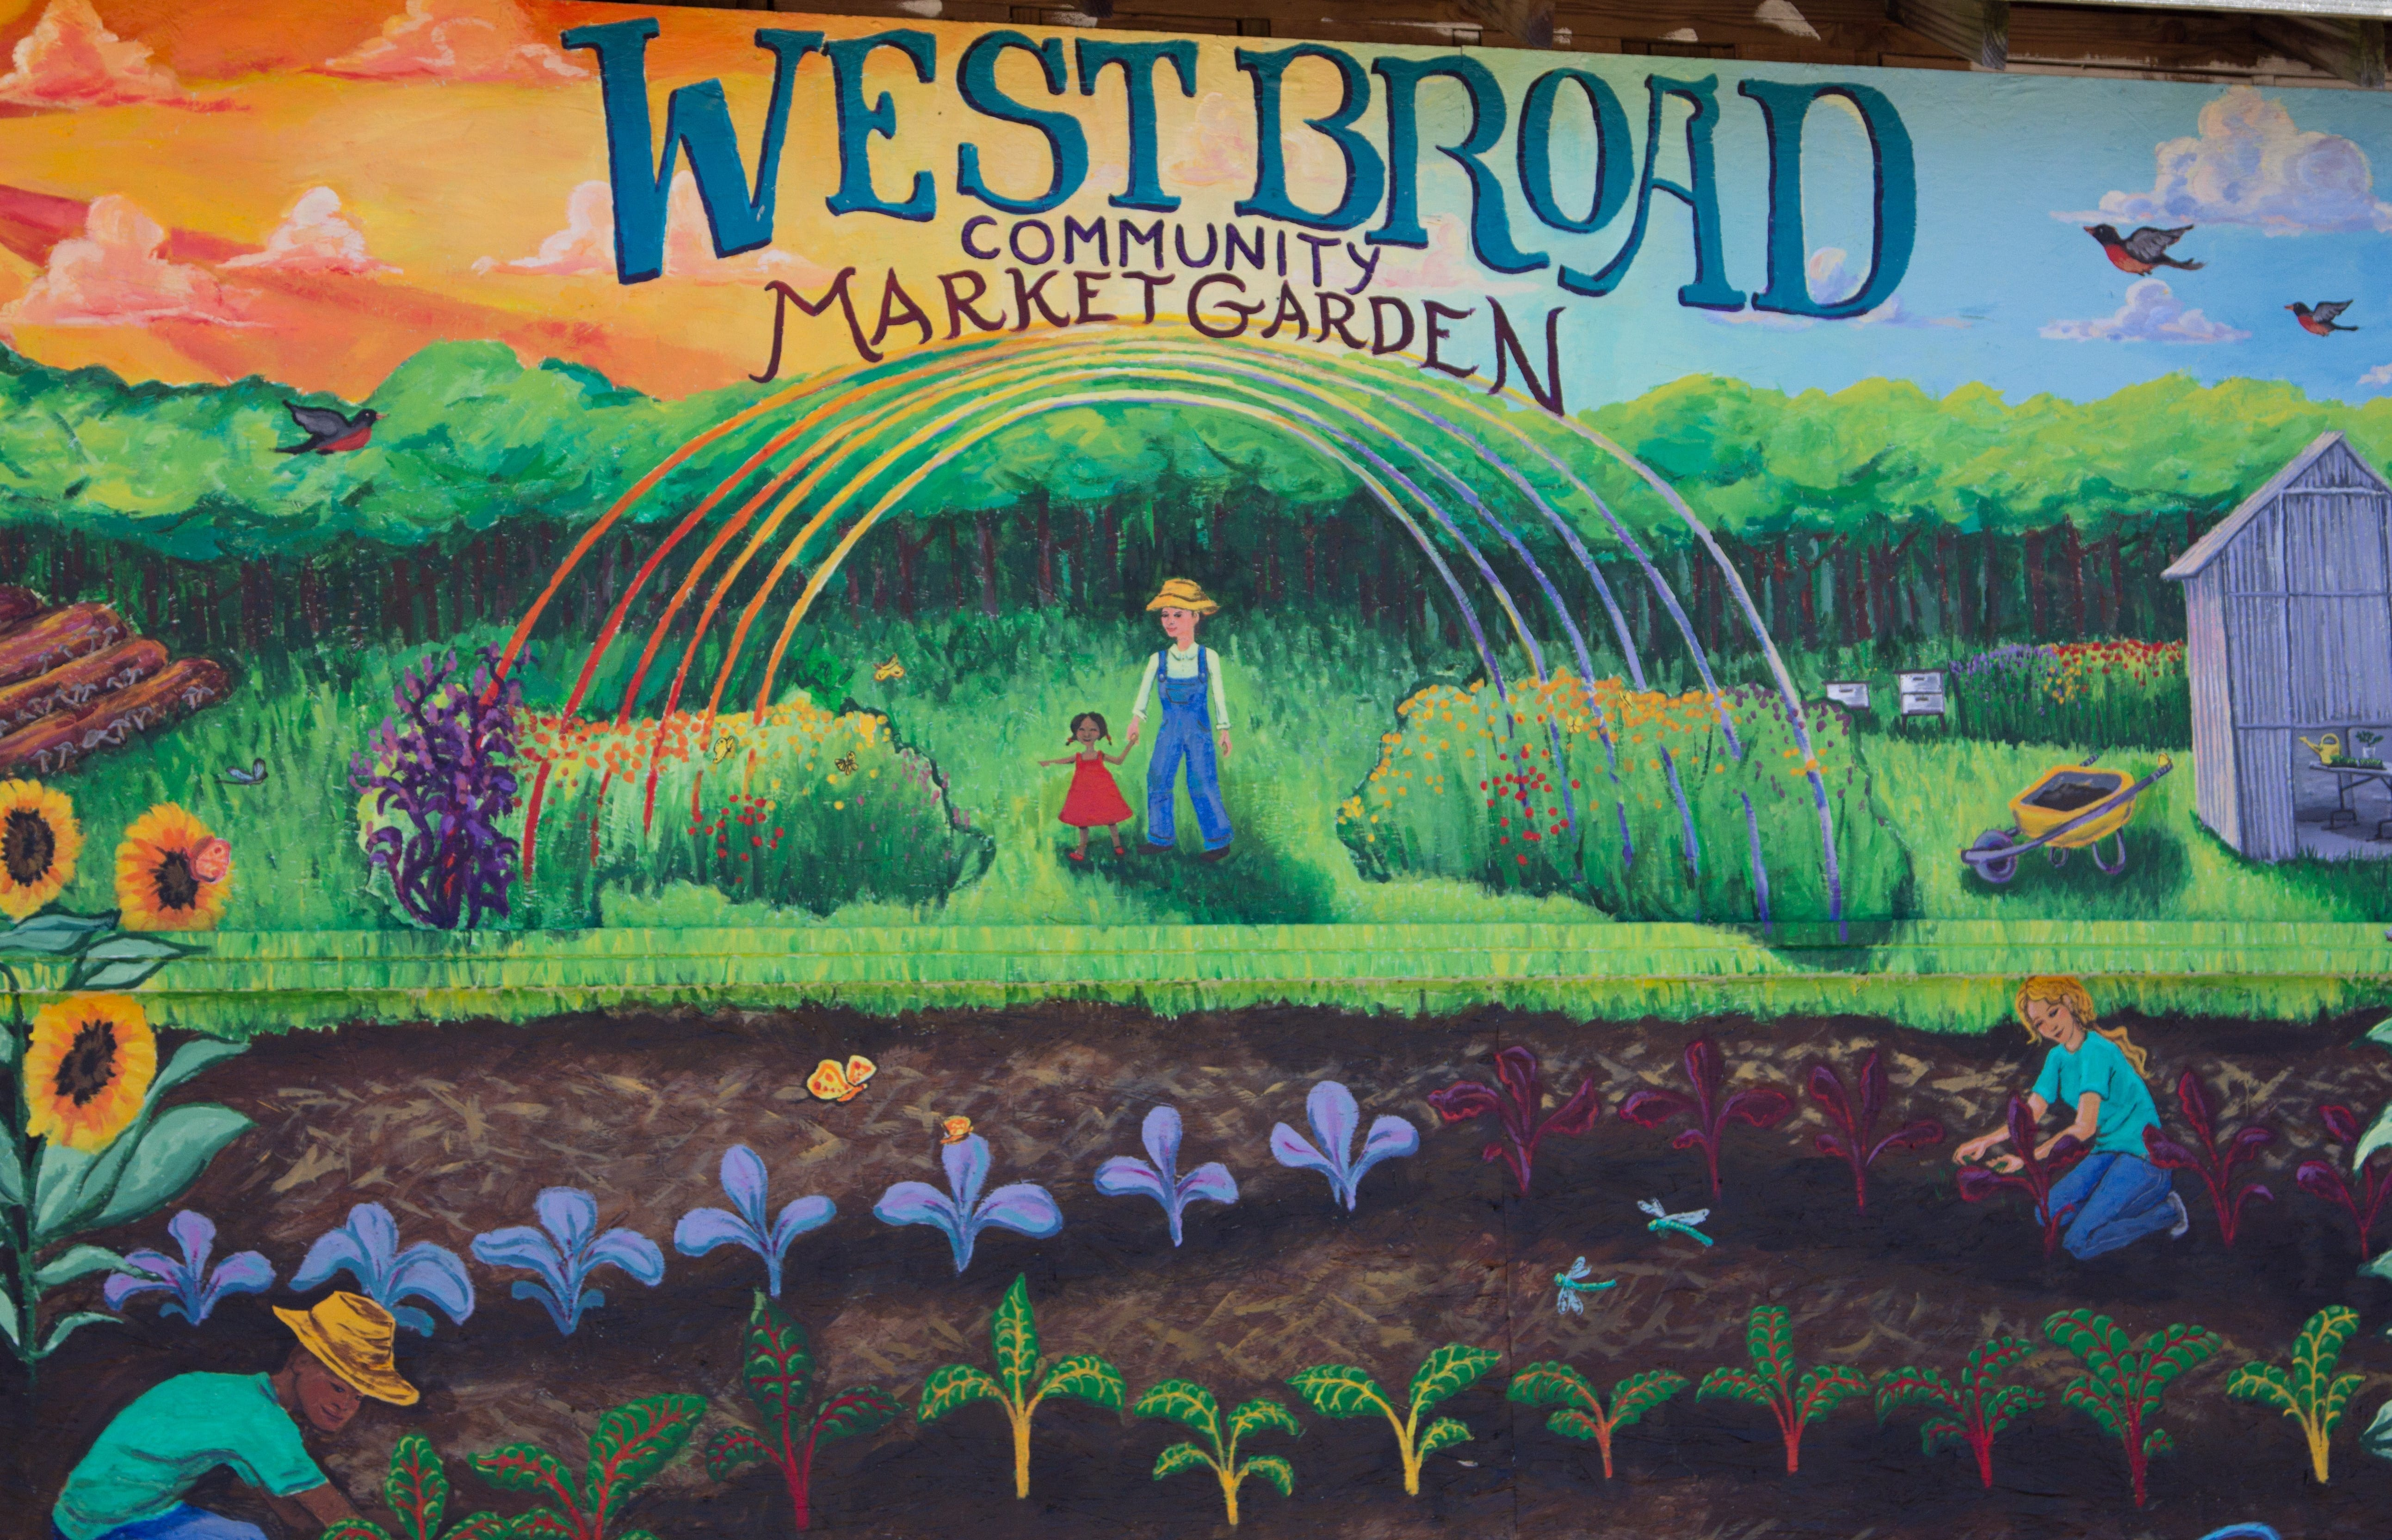 West Broad Market Garden in the running for $20,000 grant